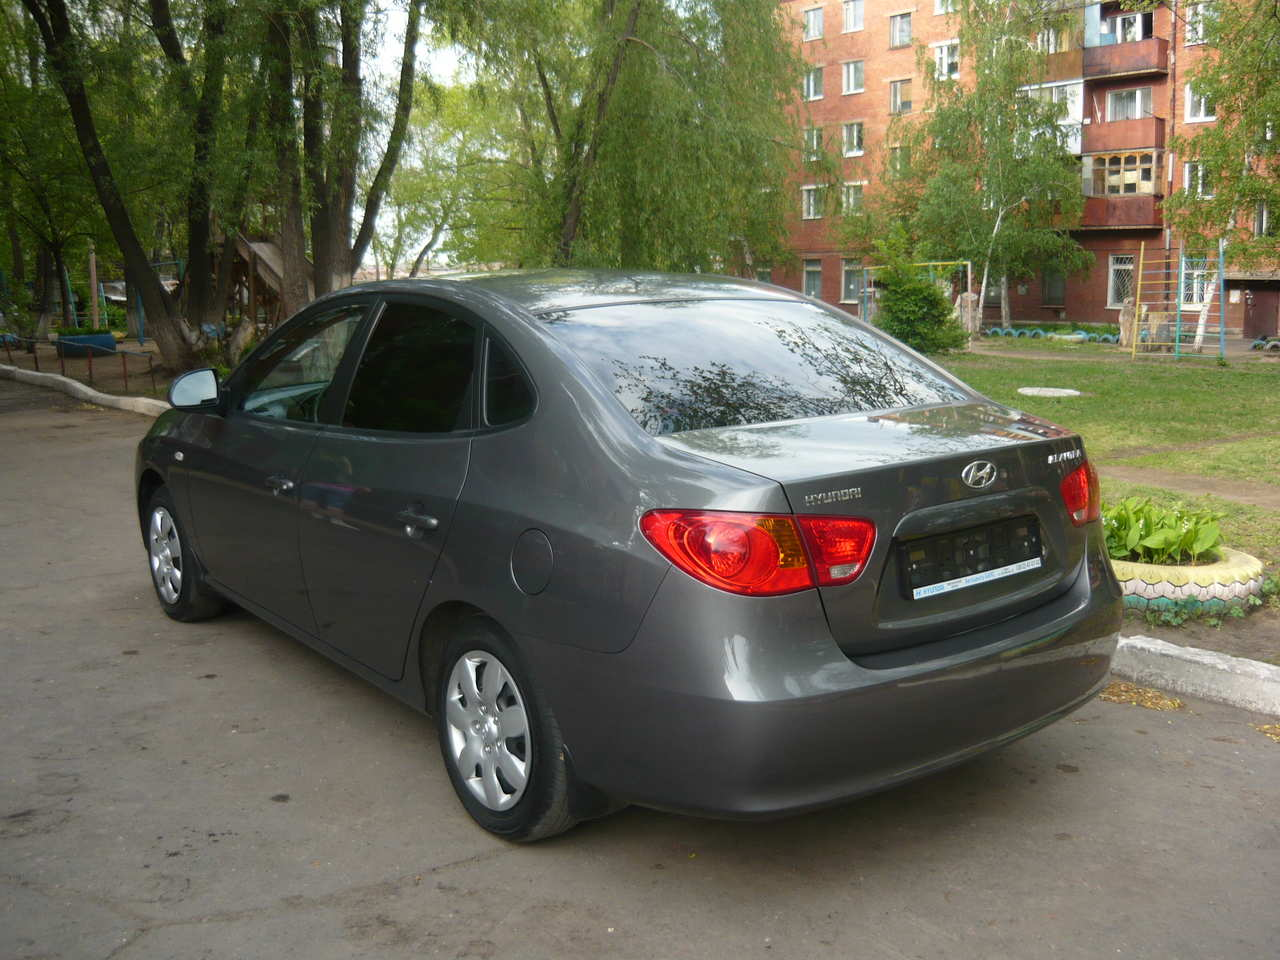 2008 hyundai elantra photos gasoline manual for sale. Black Bedroom Furniture Sets. Home Design Ideas